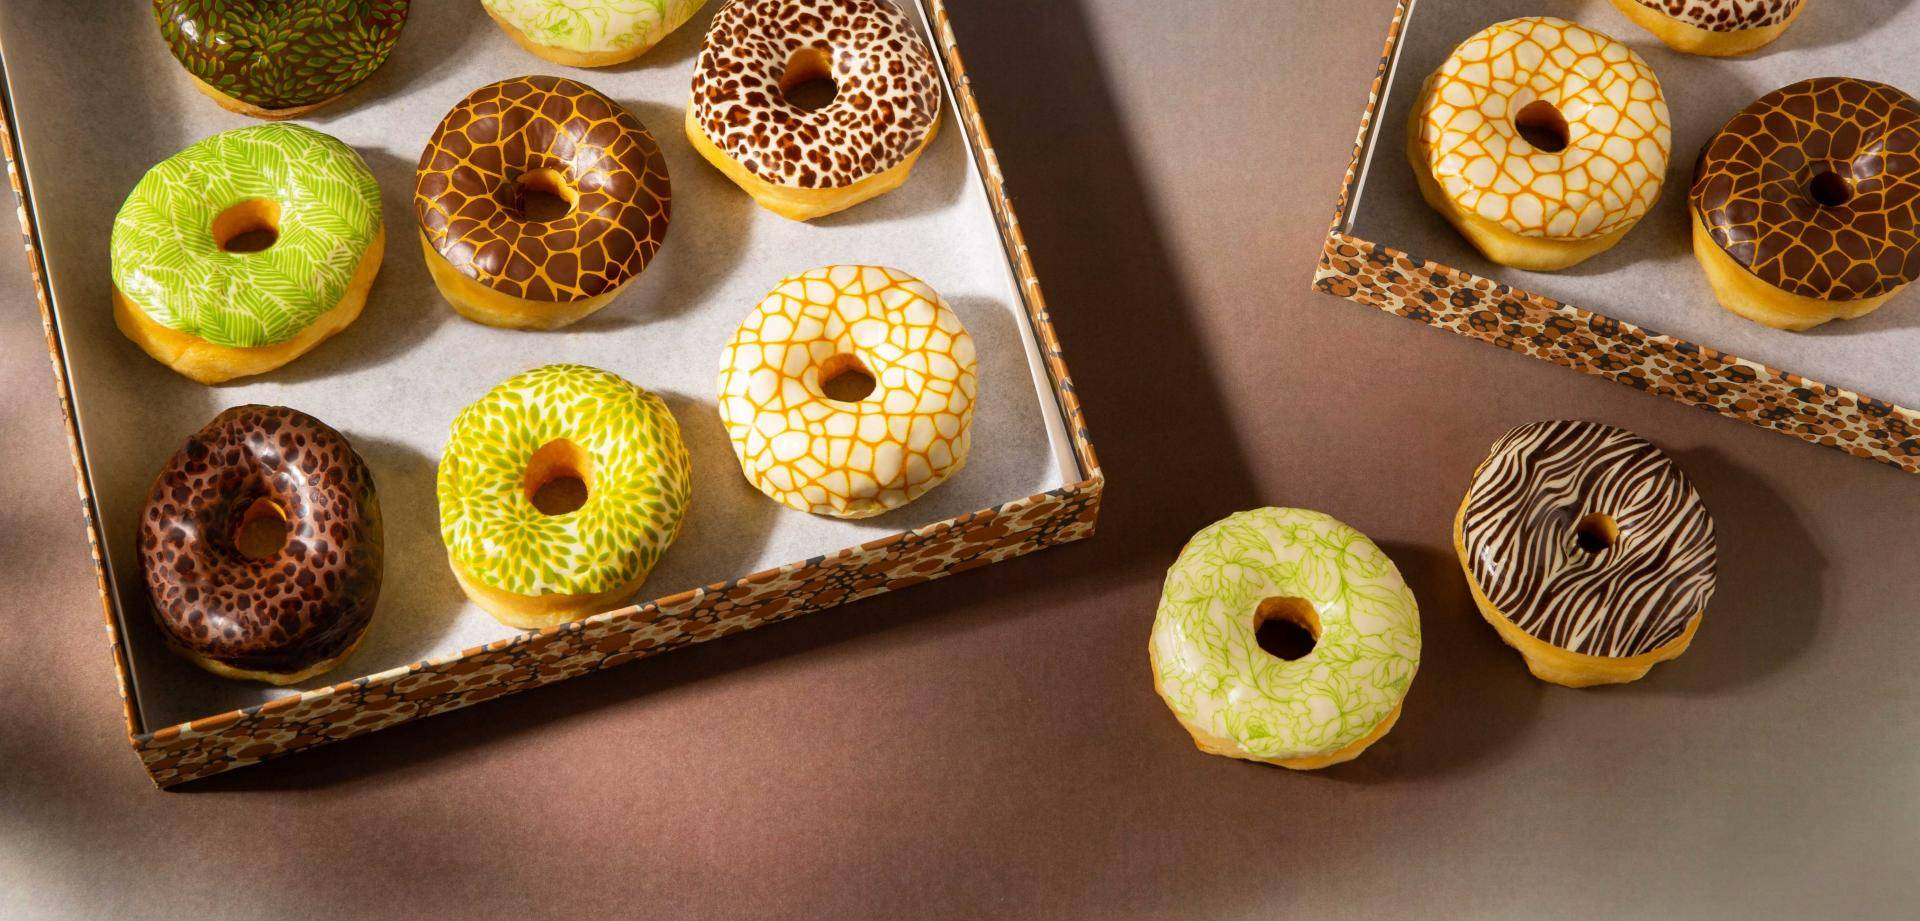 Donuts with printed glazing